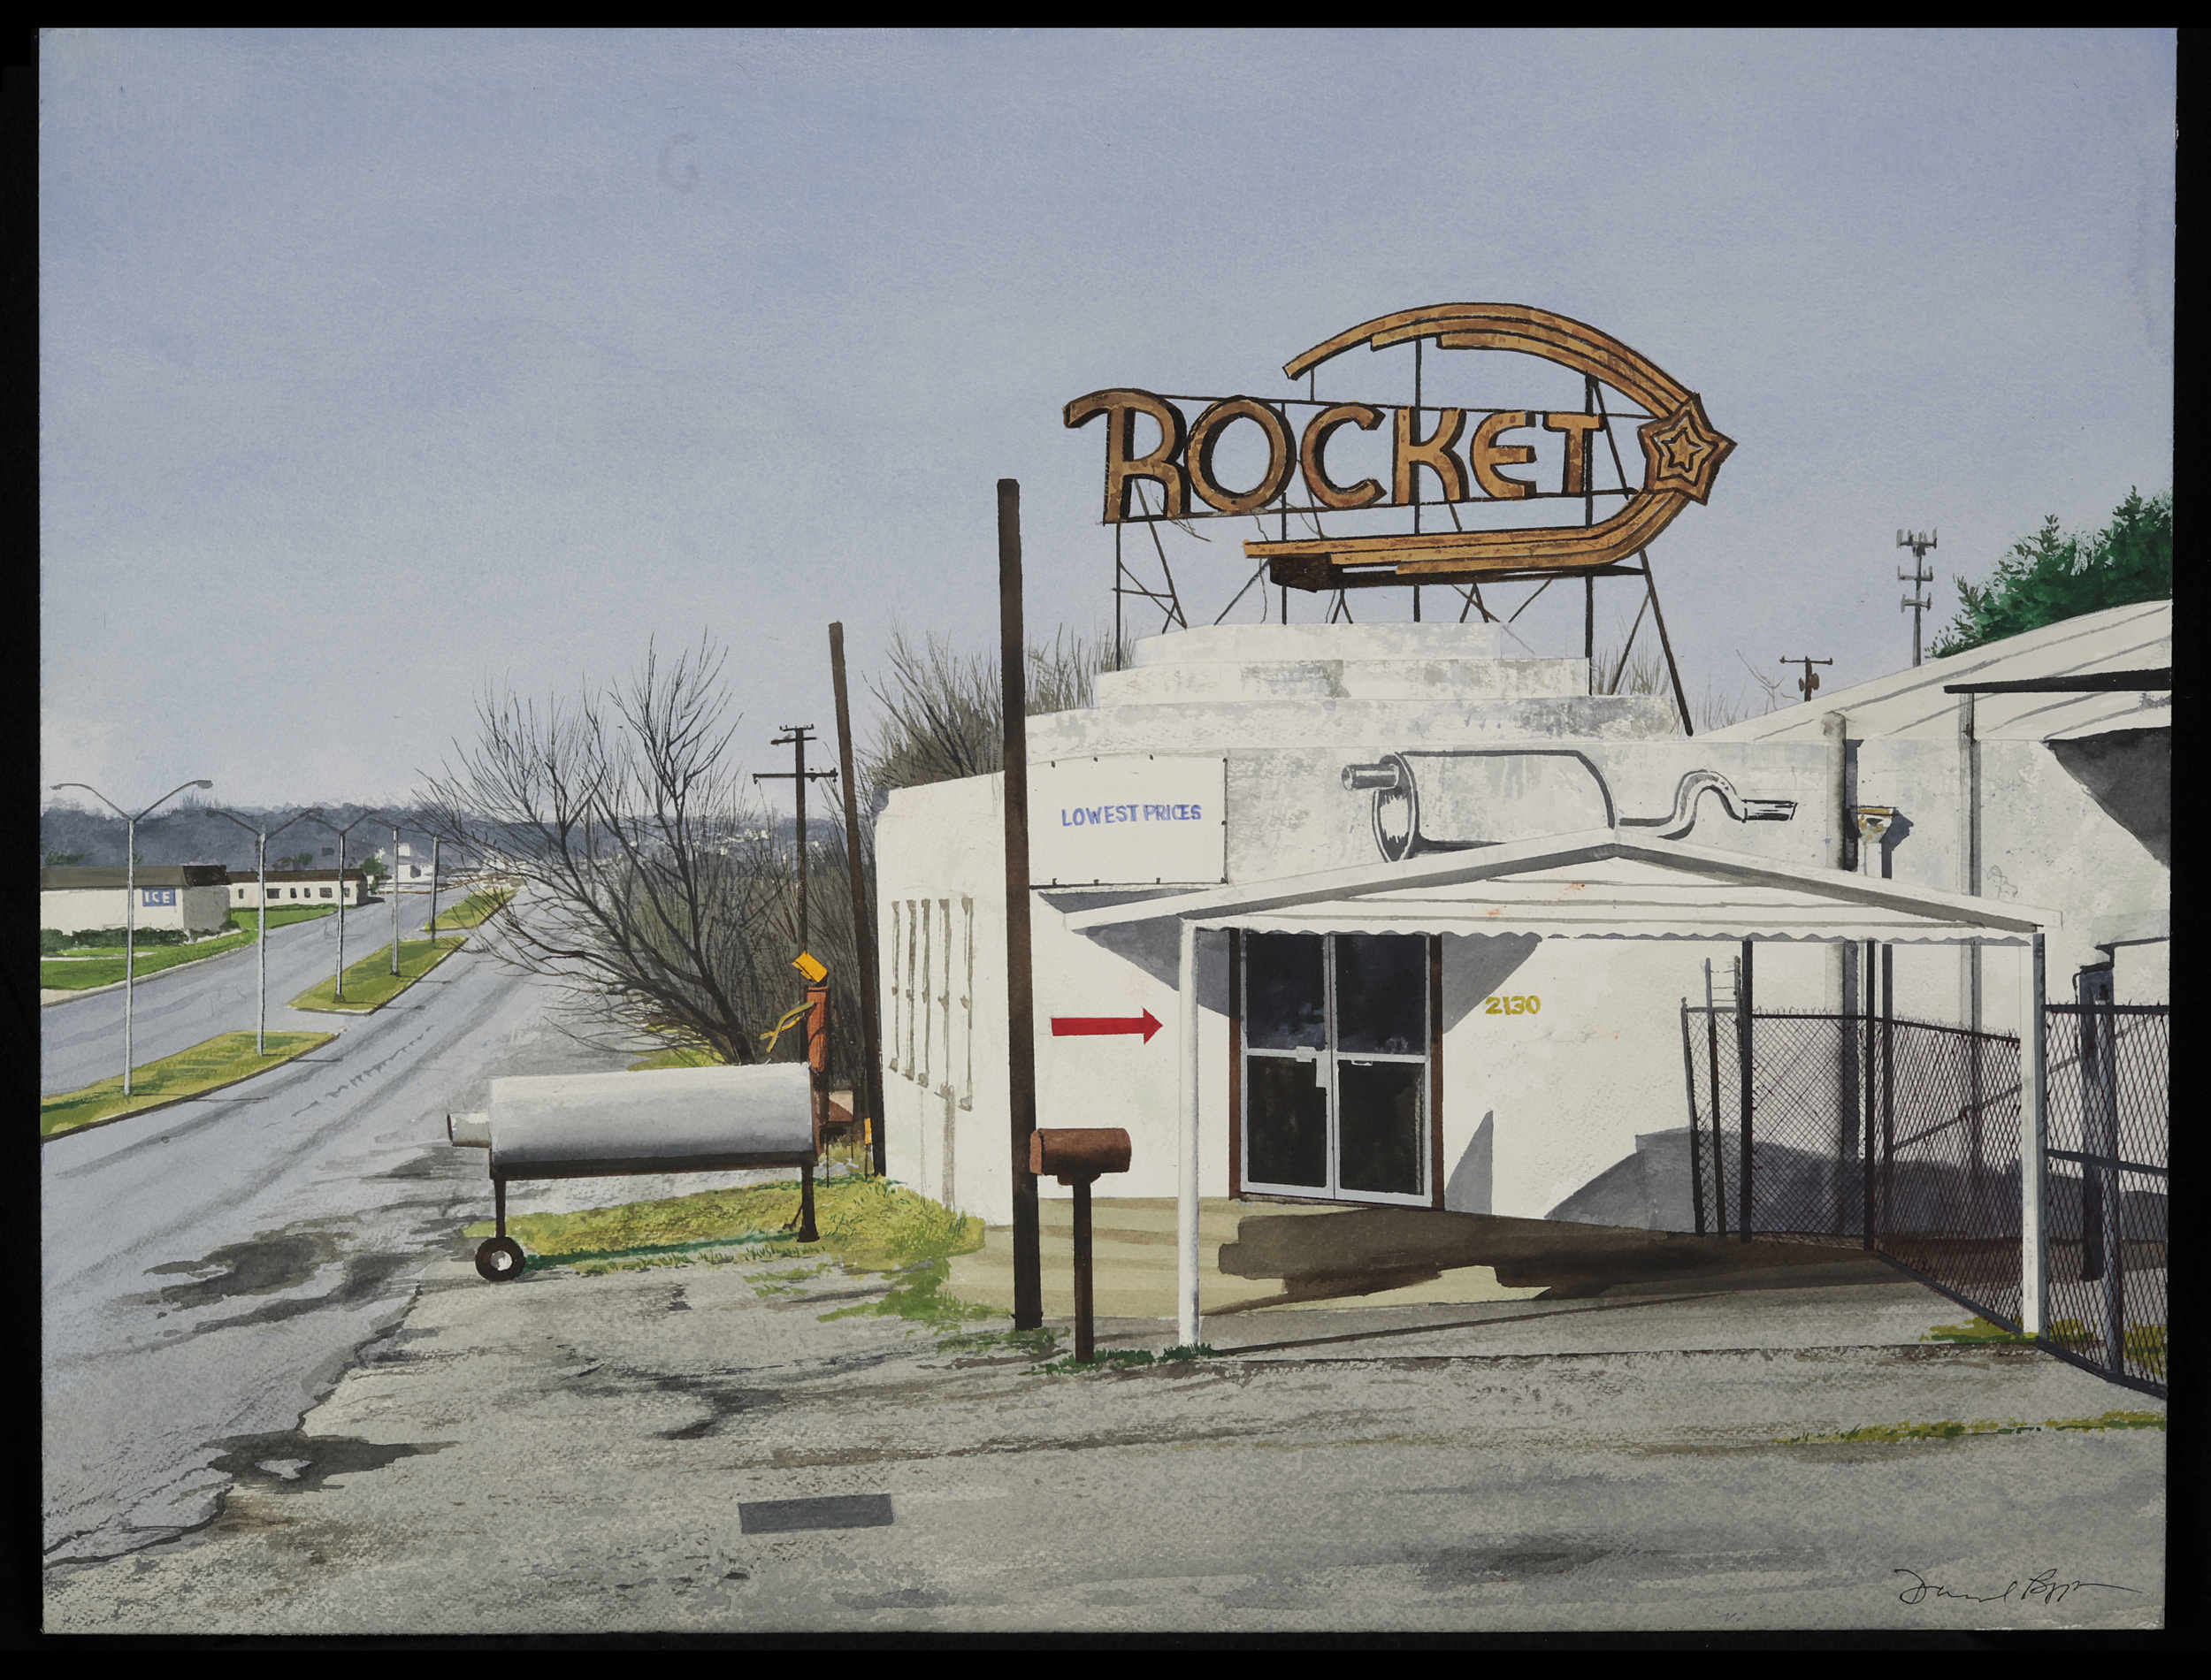 Daniel Blagg, The Rocket, 2009, watercolor on paper. Private Collection, Fort Worth, TX.